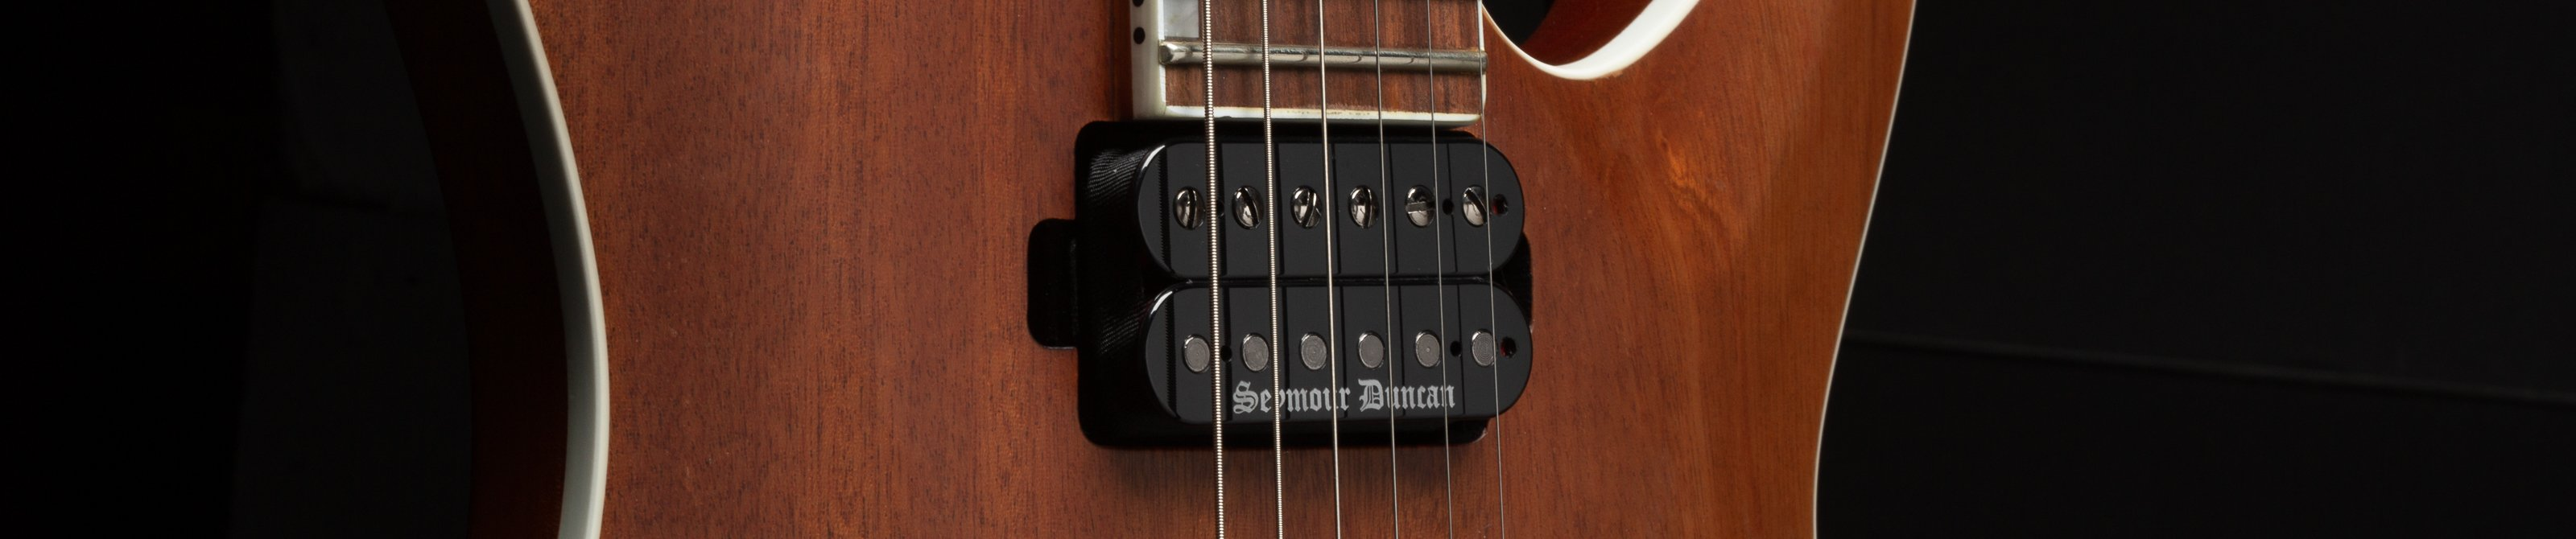 High Output Passive Humbuckers for Metal 11102 91 B Banner